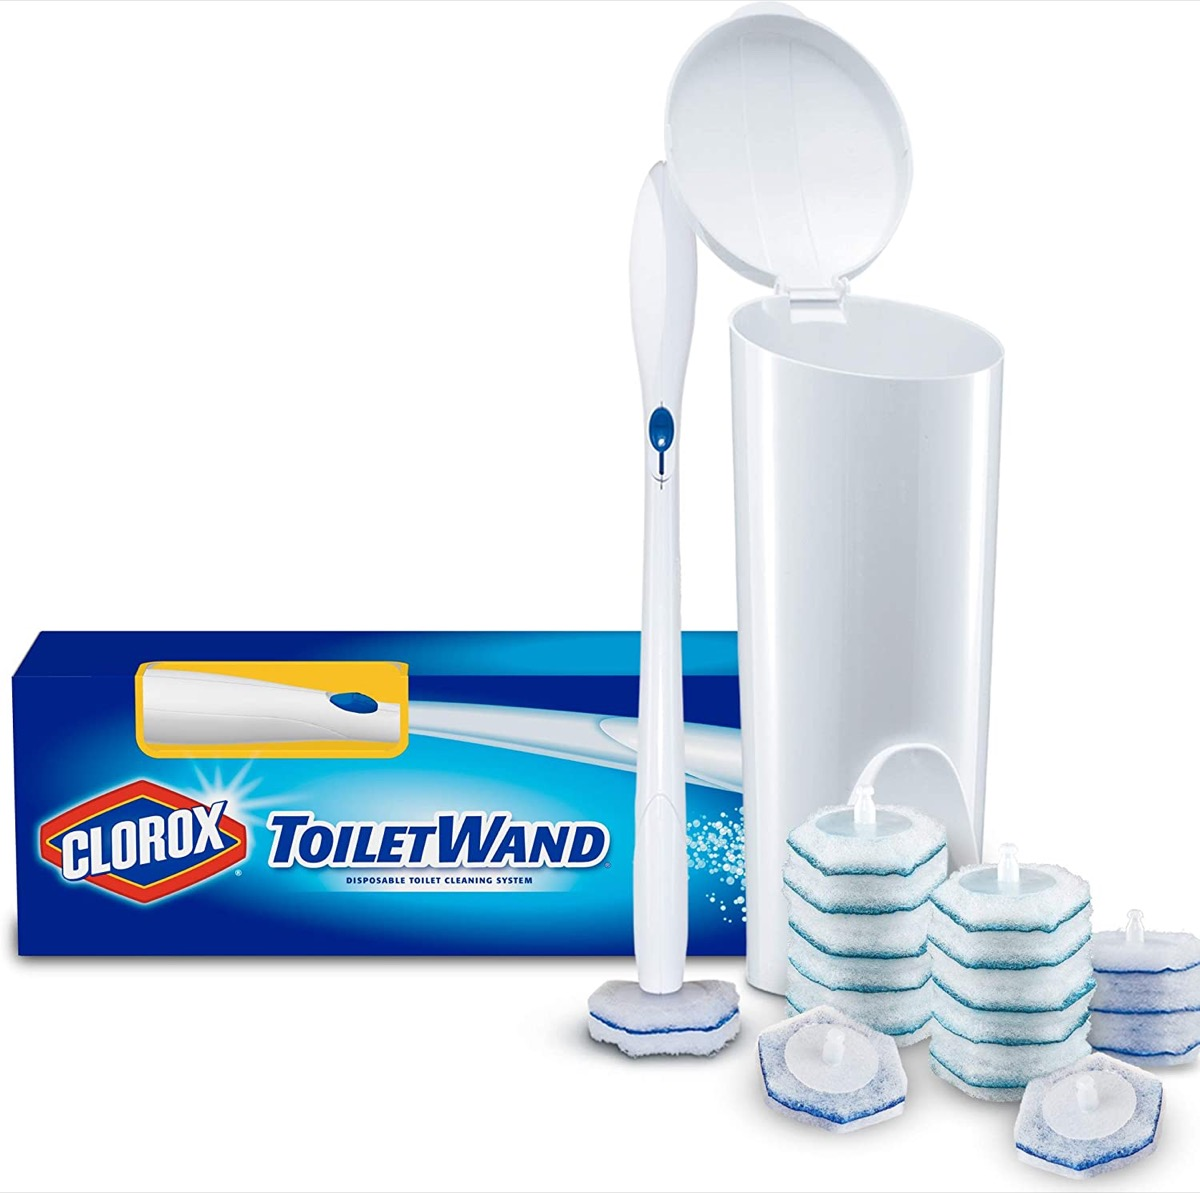 clorox toilet wand and refills